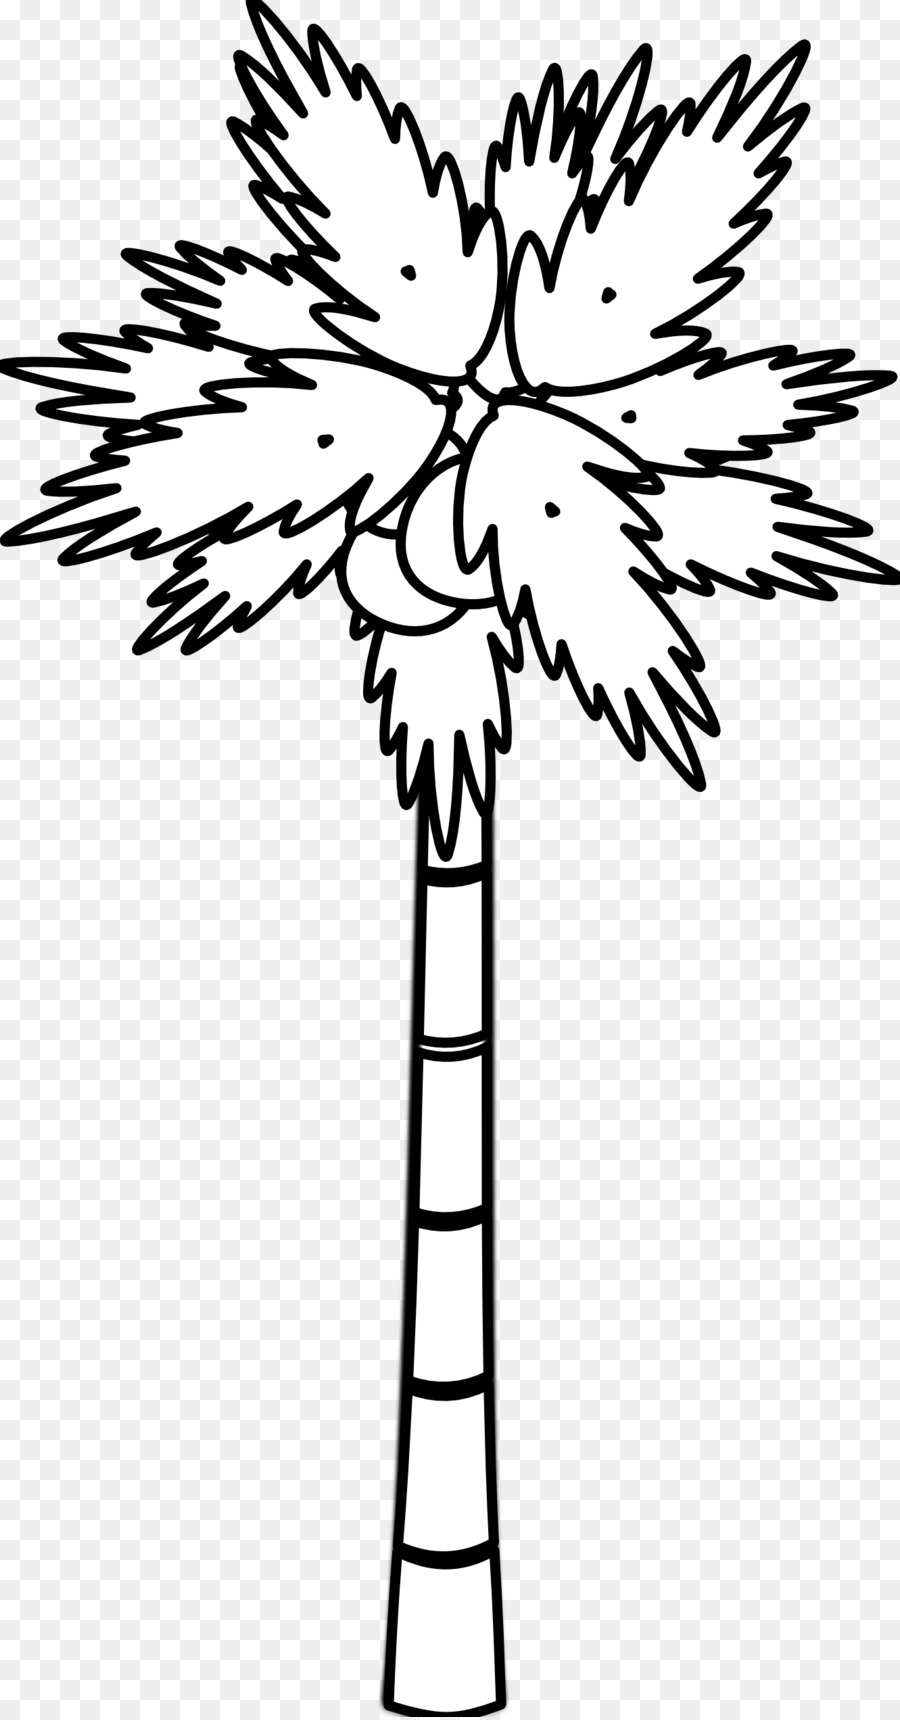 Coconut Tree Arecaceae Clip Art